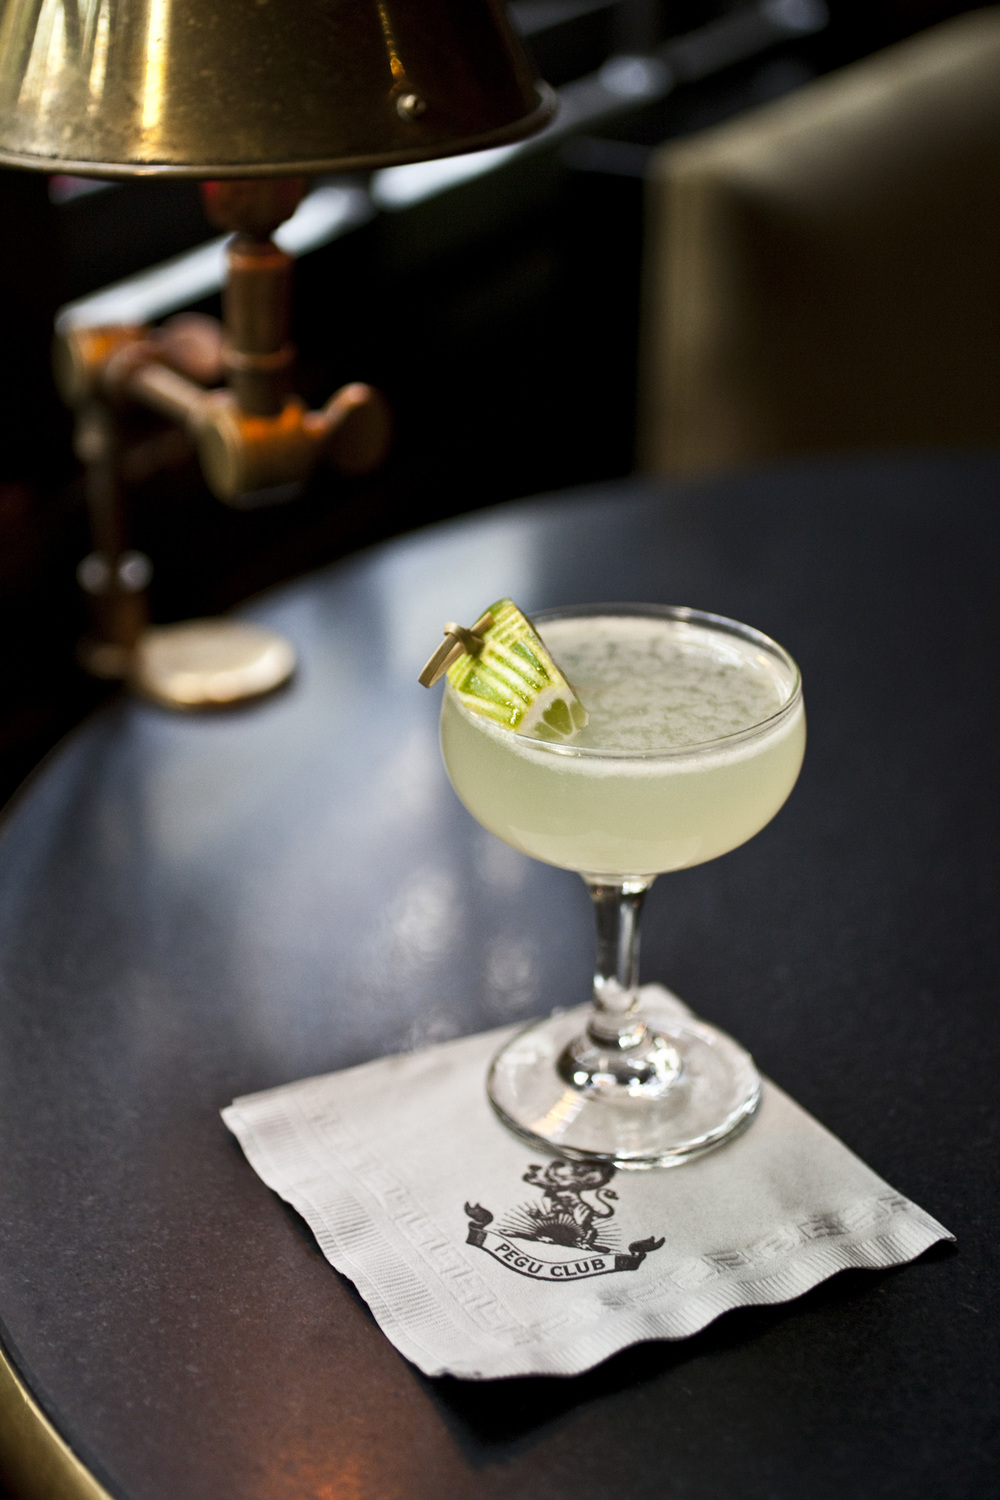 Douglas Fir Gimlet at Pegu Club